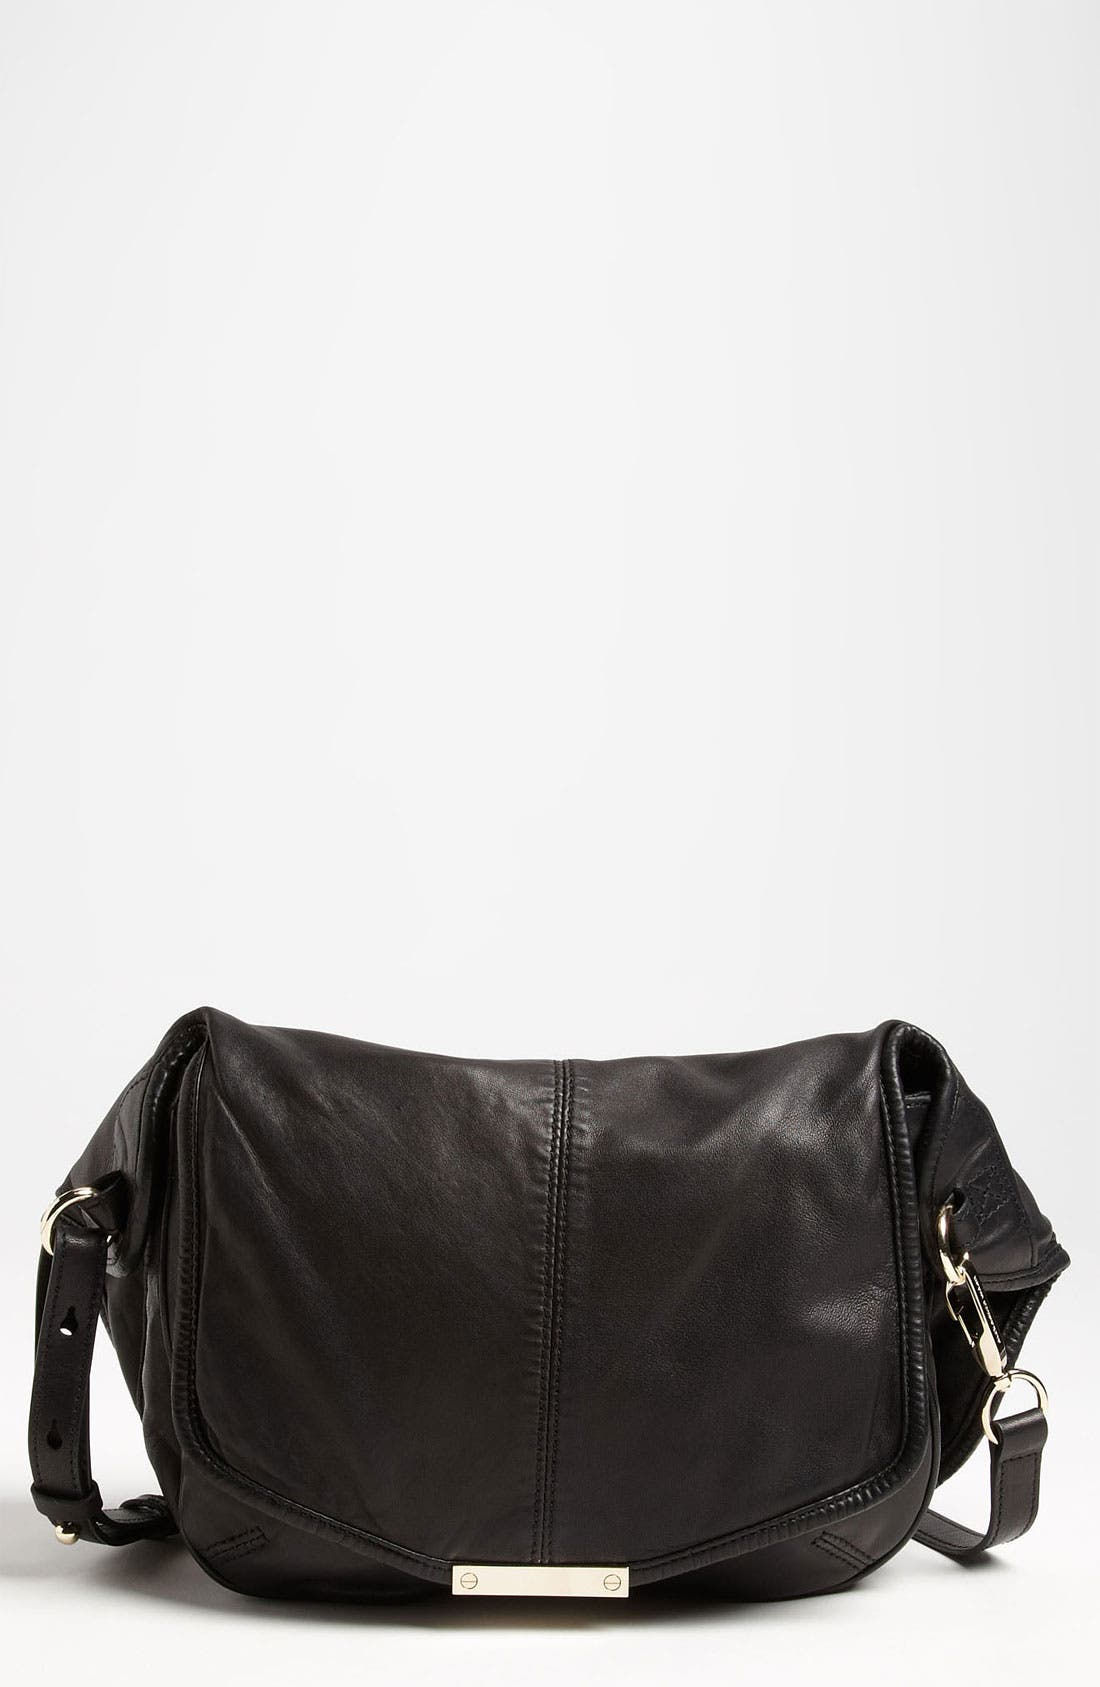 Main Image - Alexander Wang 'Iris' Leather Crossbody Bag